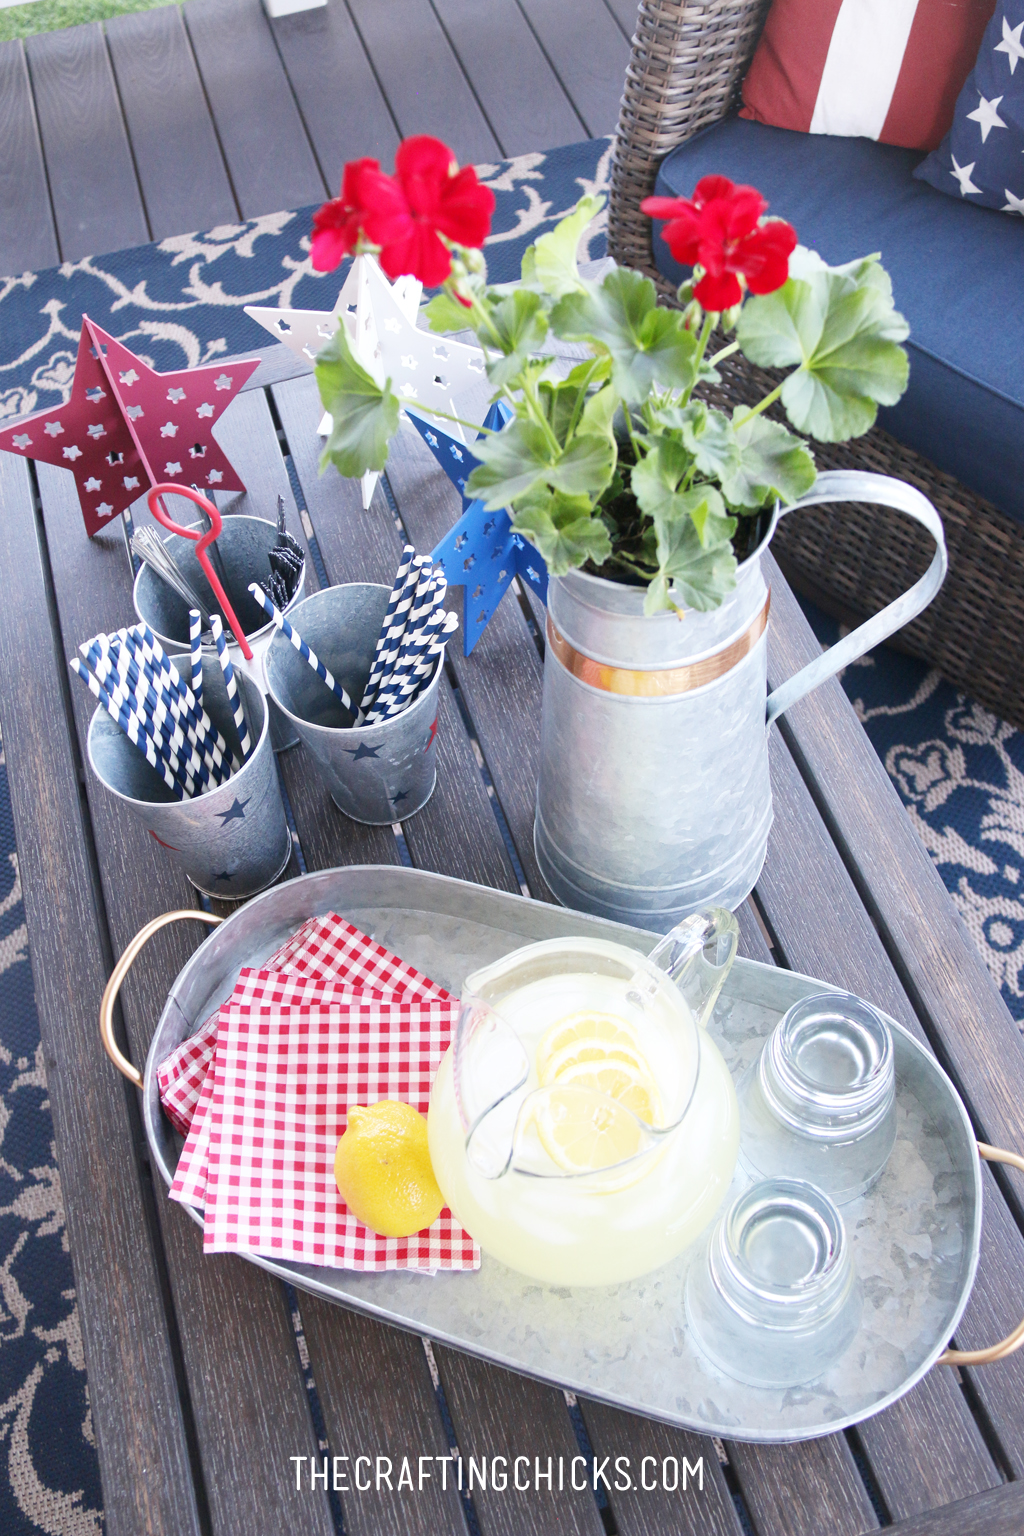 Metal Galvanized pitcher with red geraniums in front of a galvanized tray with glass pitcher of lemonade.